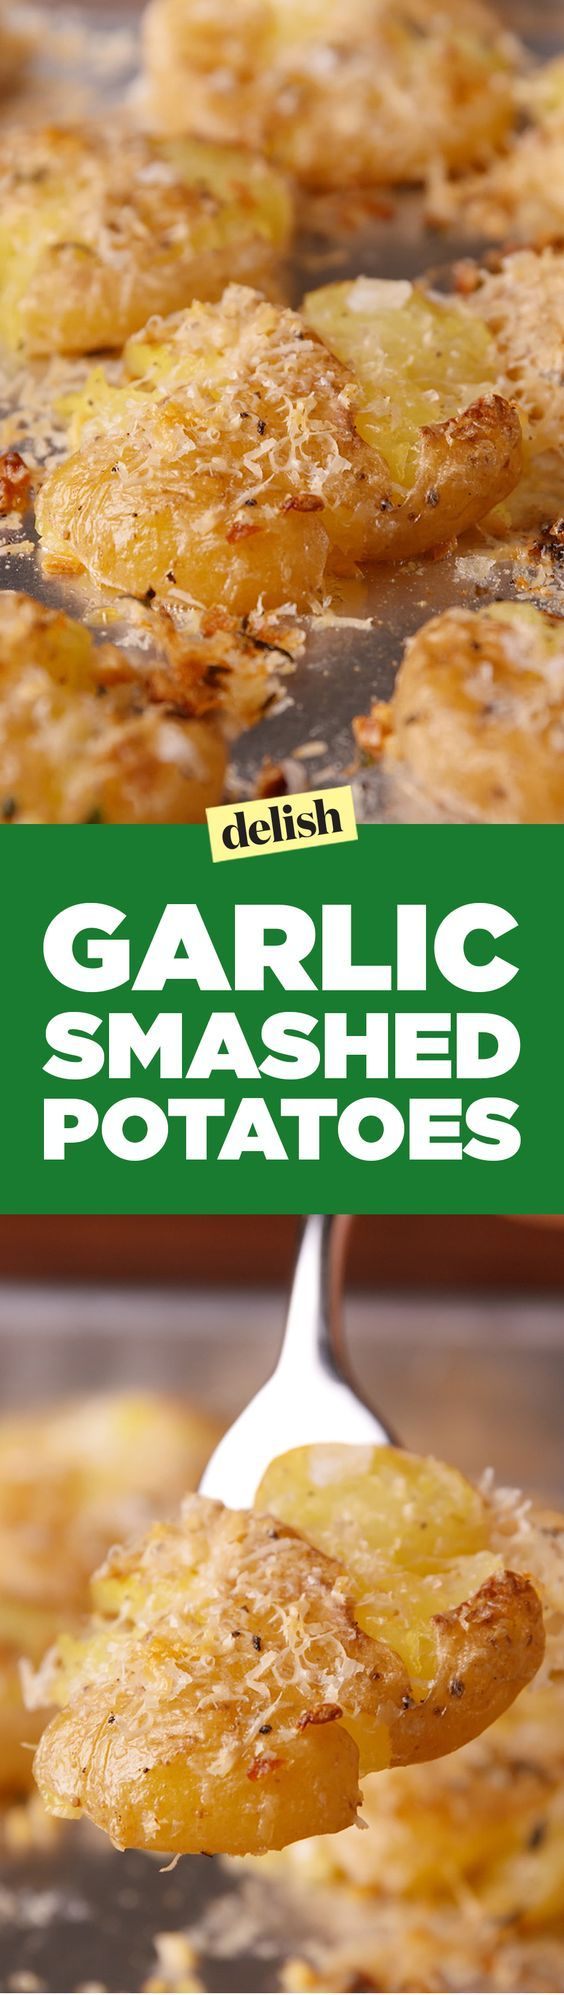 Garlic smashed potatoes are the new tater tots. Get the recipe on Delish.com.